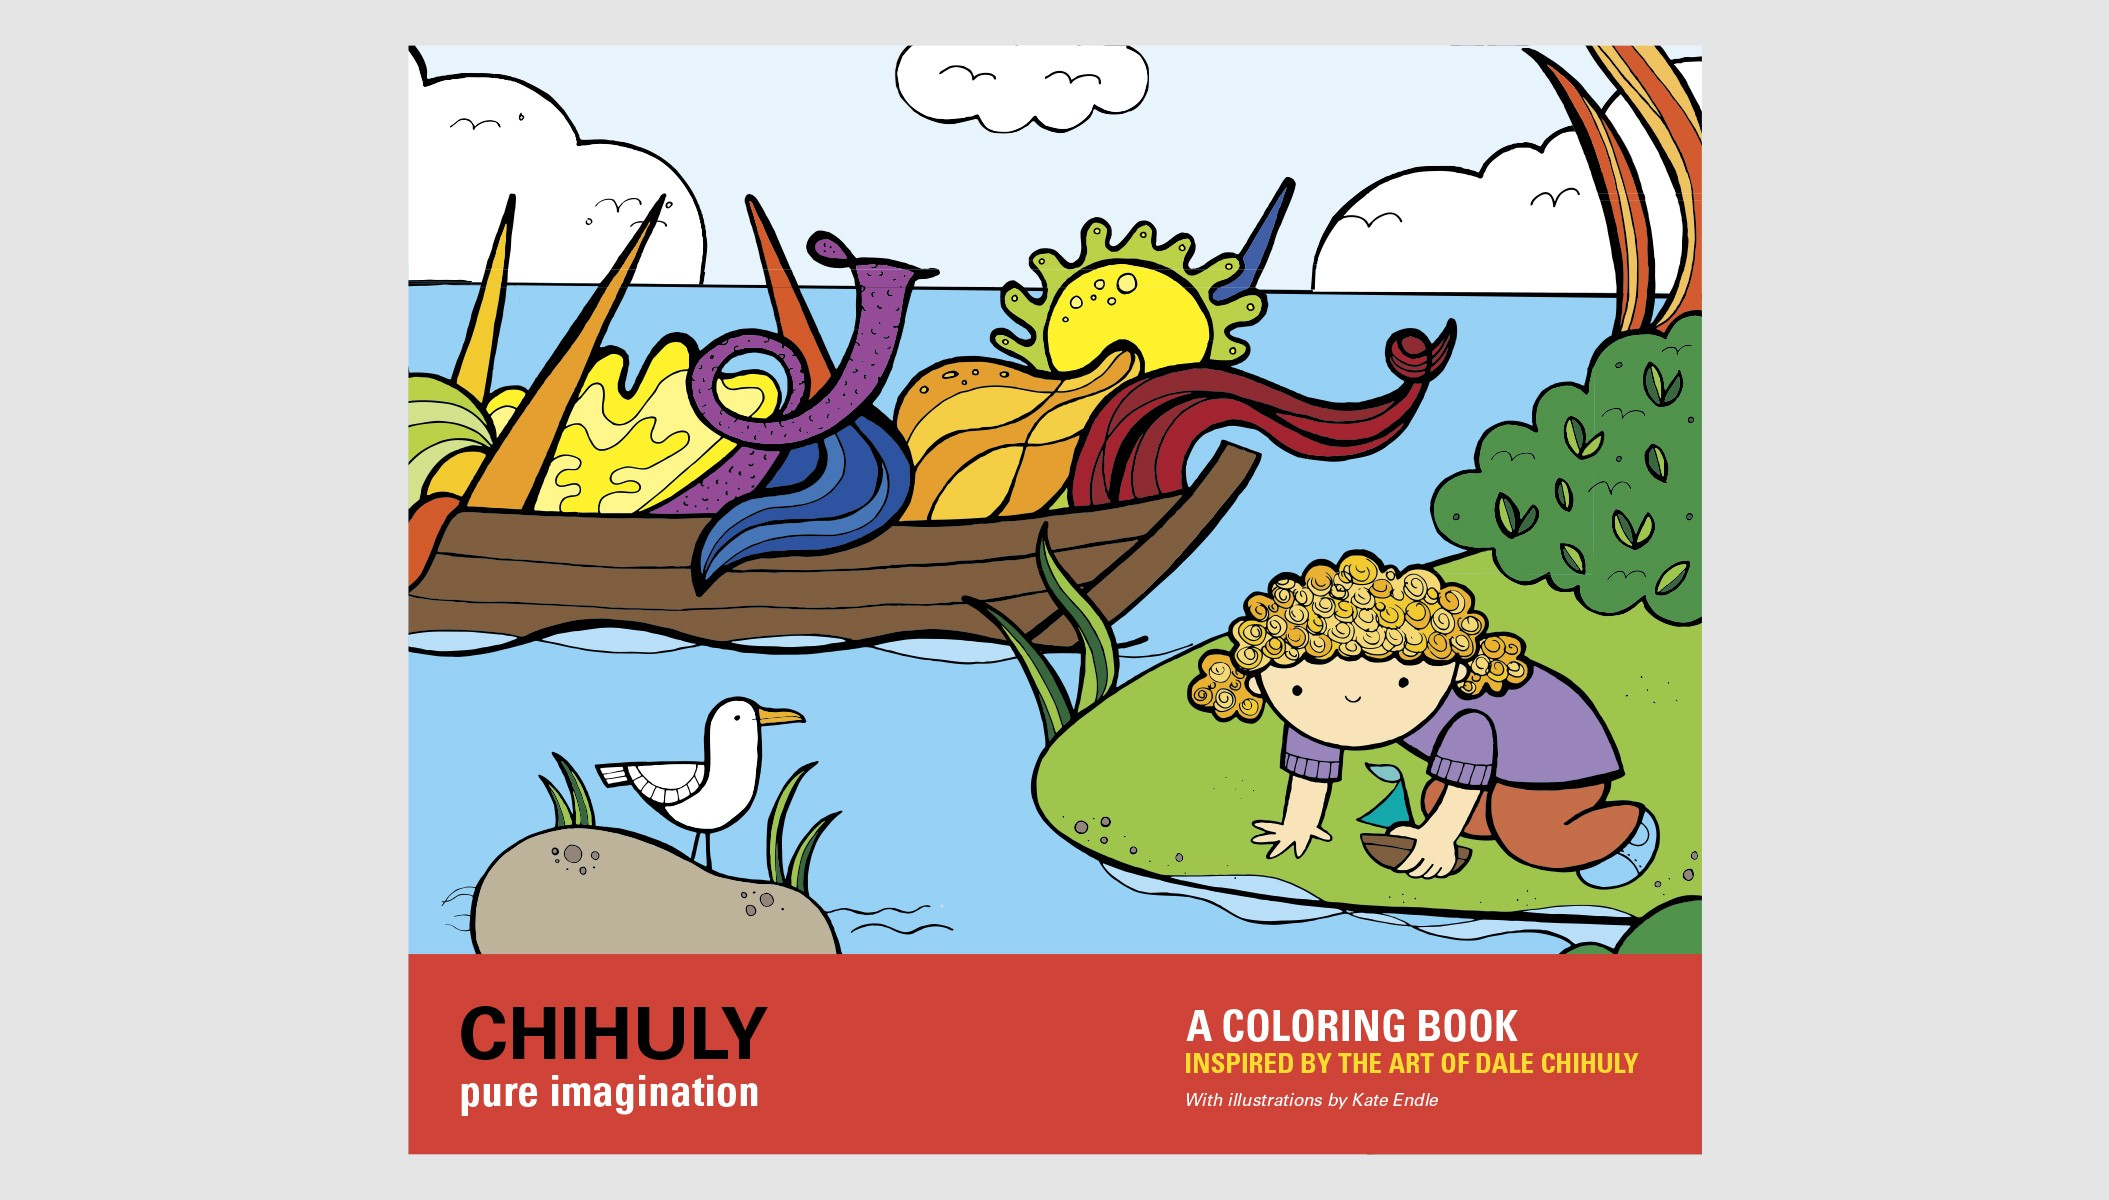 Chihuly clipart #14, Download drawings